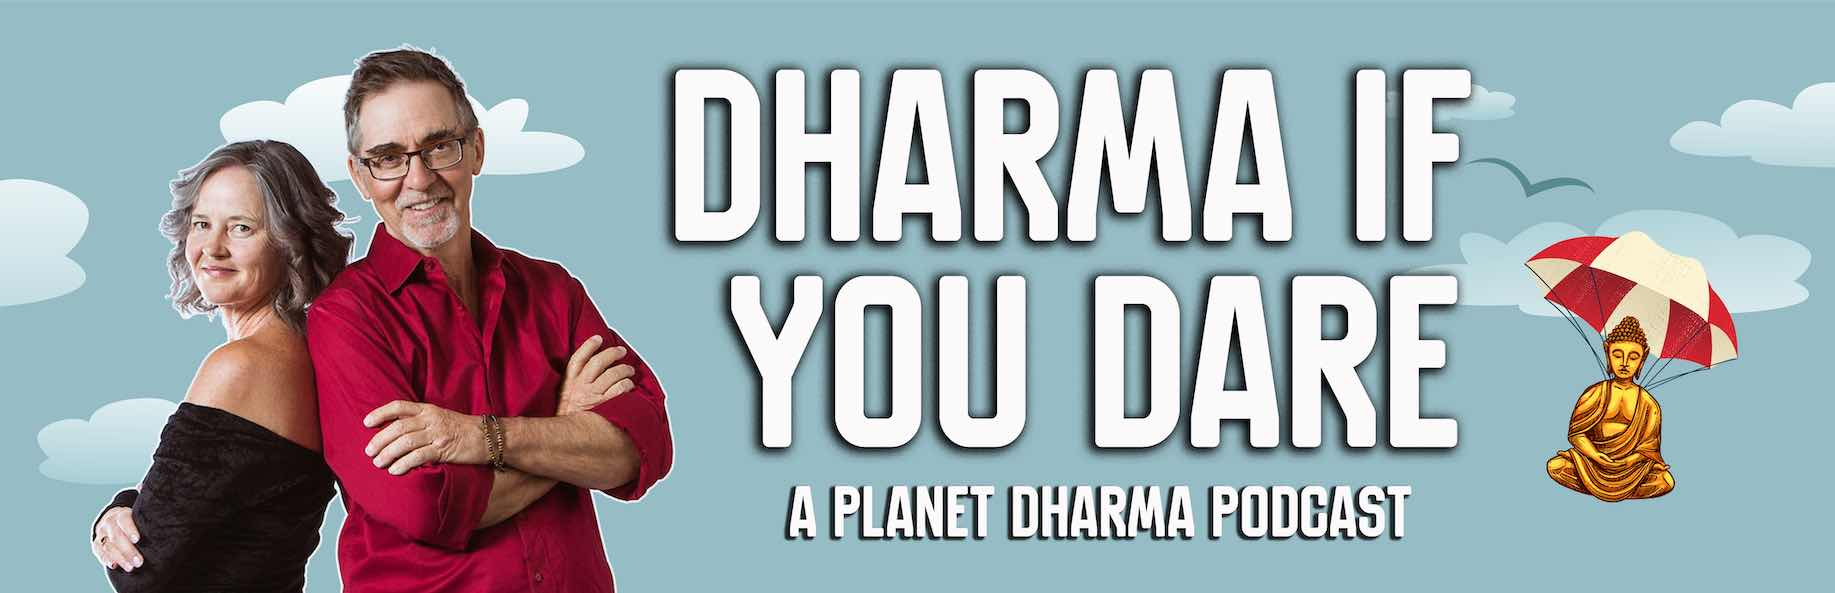 Planet Dharma- Dharma If You Dare Podcast with Doug Duncan and Catherine Pawasarat